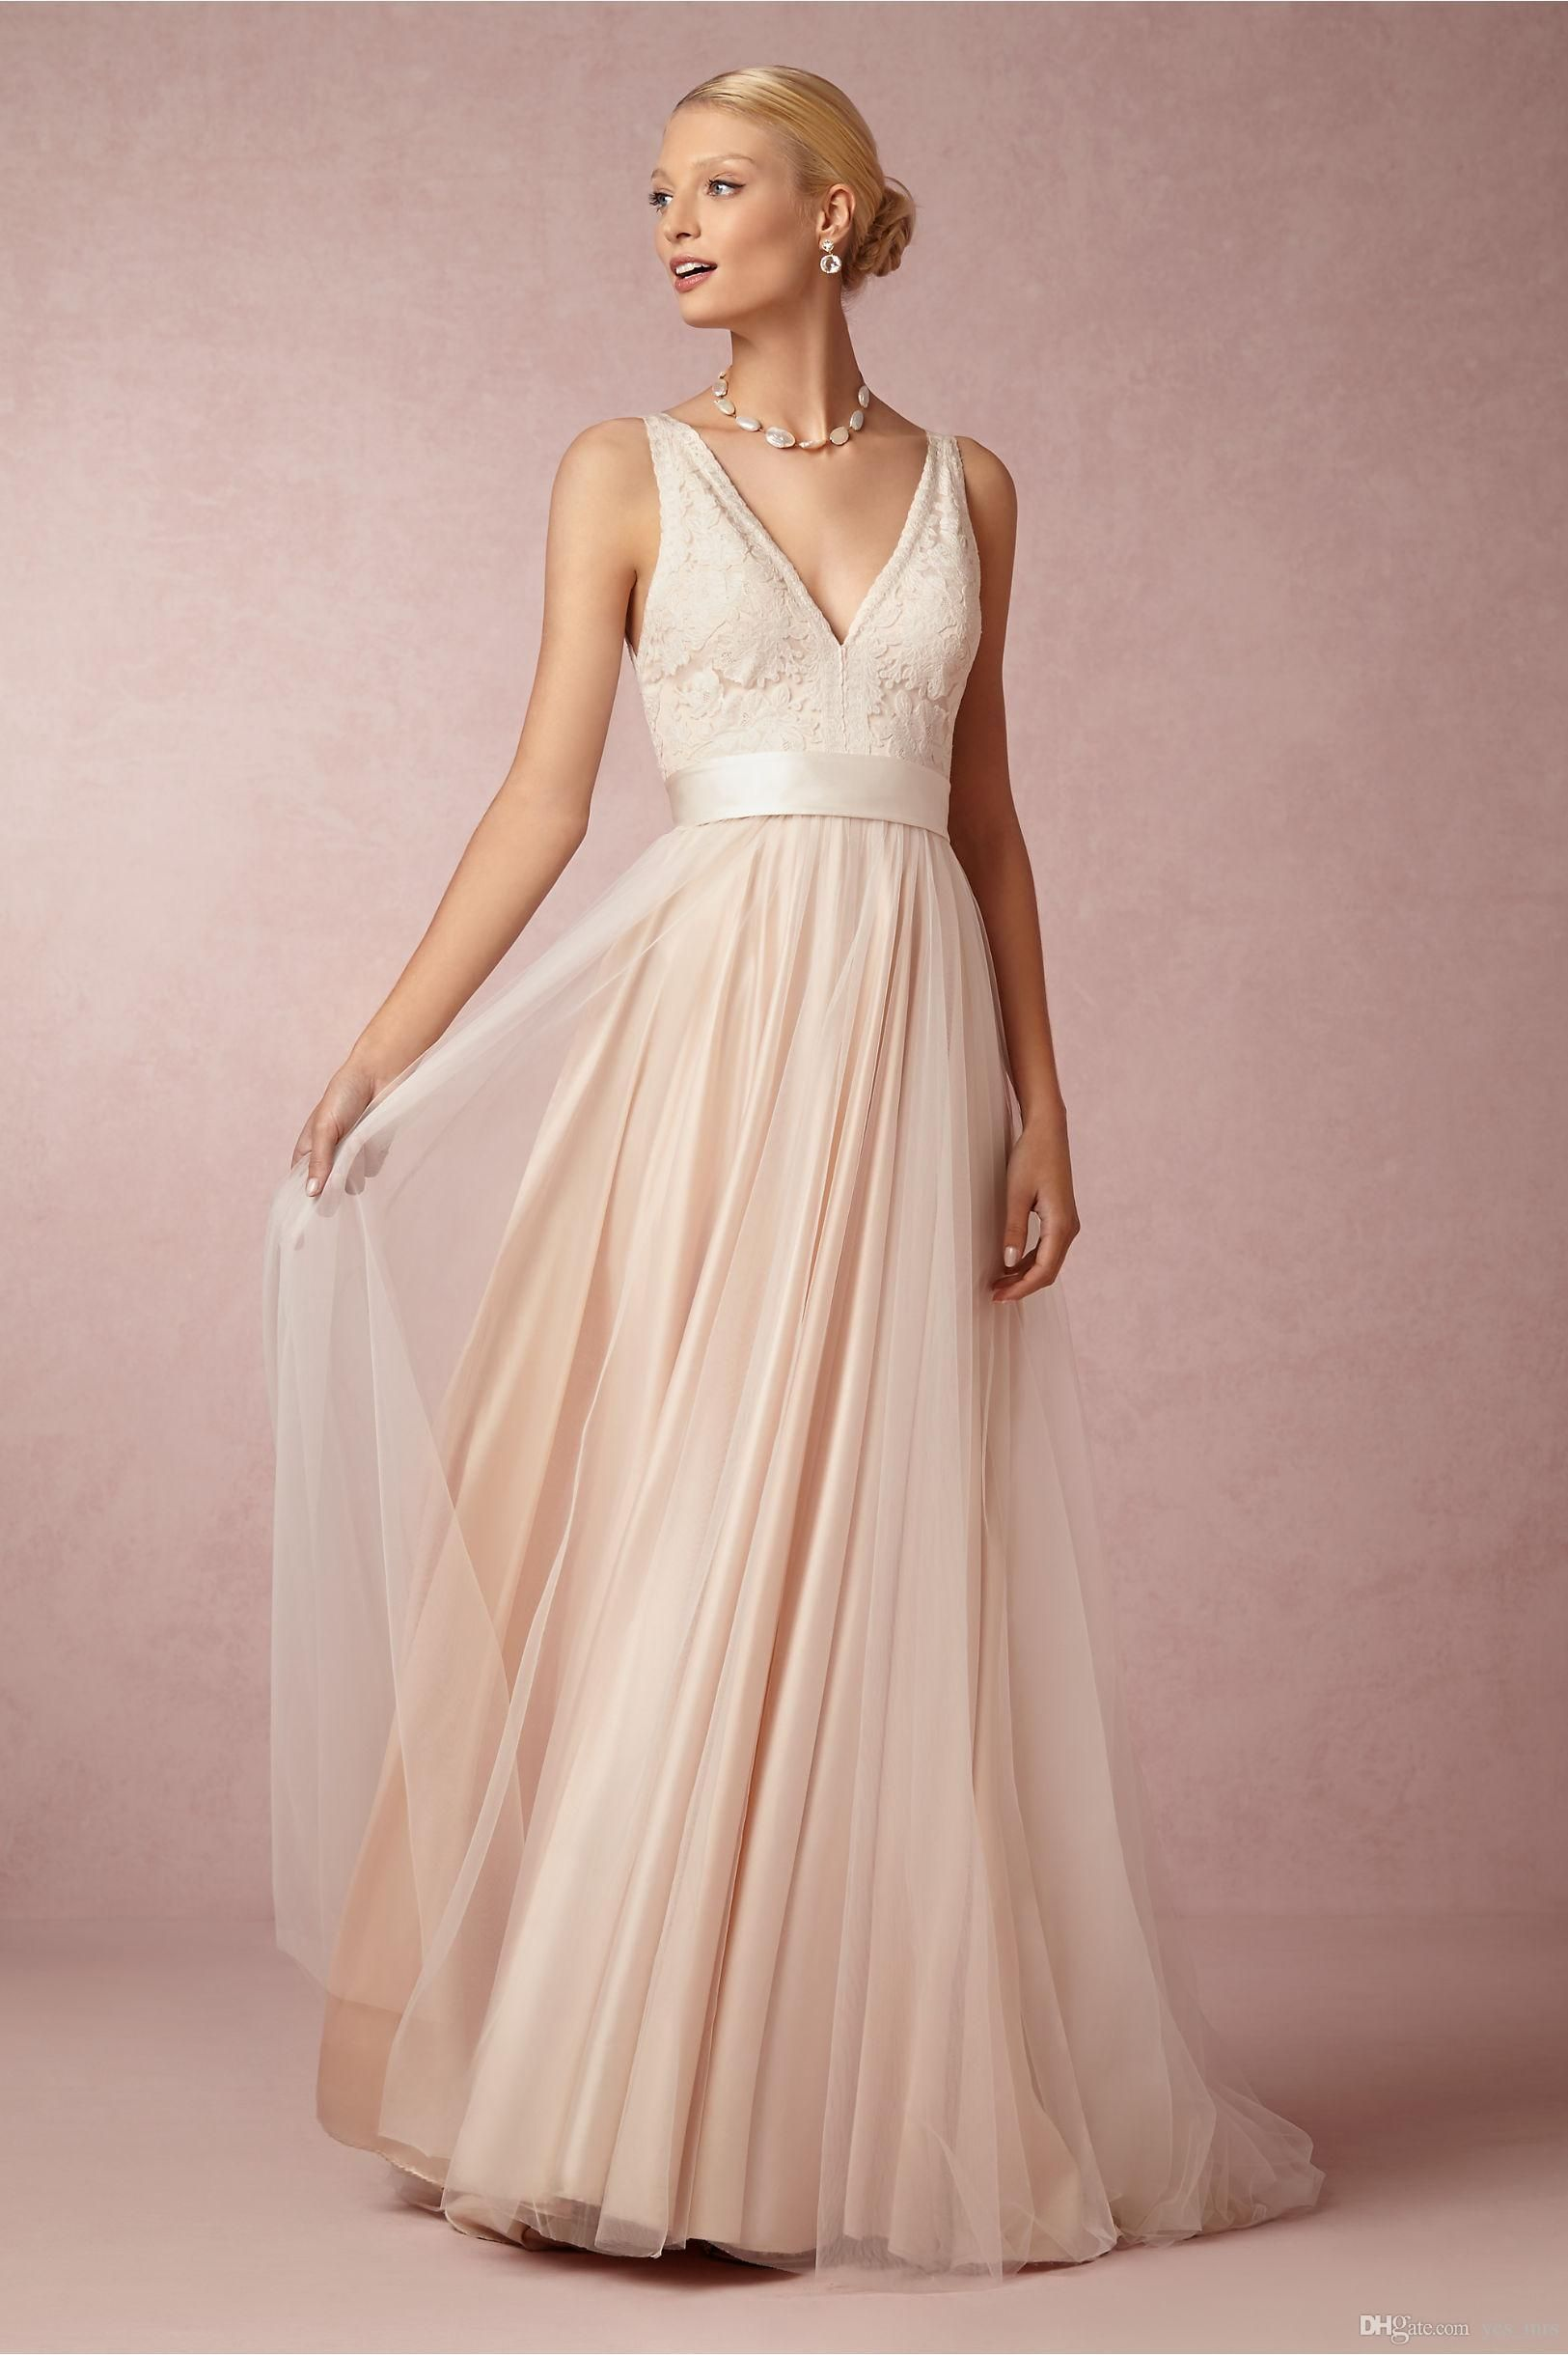 Bridesmaid dresses 2016 new romantic lace v neck for wedding tulle bridesmaid dresses 2016 new romantic lace v neck for wedding tulle sweep train long with sashes party dress plus size prom gowns under 100 ombrellifo Choice Image